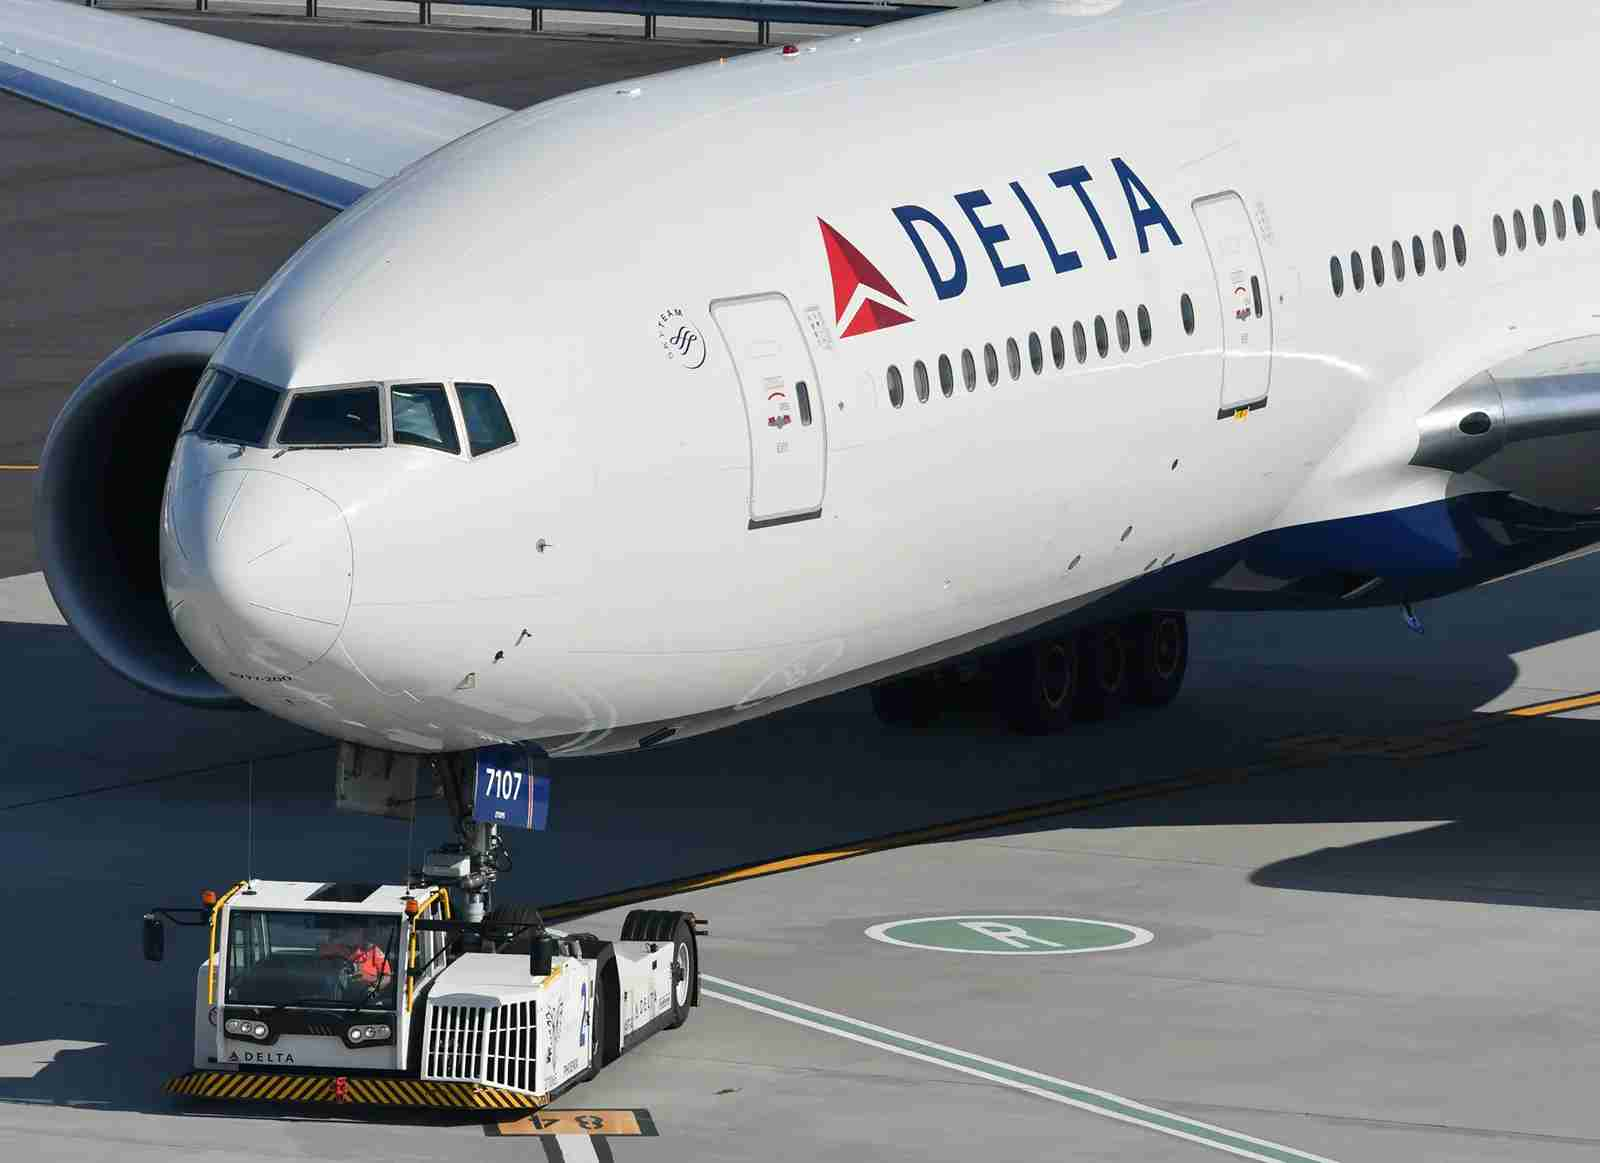 A Boeing 777 being pulled by a tug at Atlanta airport (Photo by Alberto Riva/TPG)